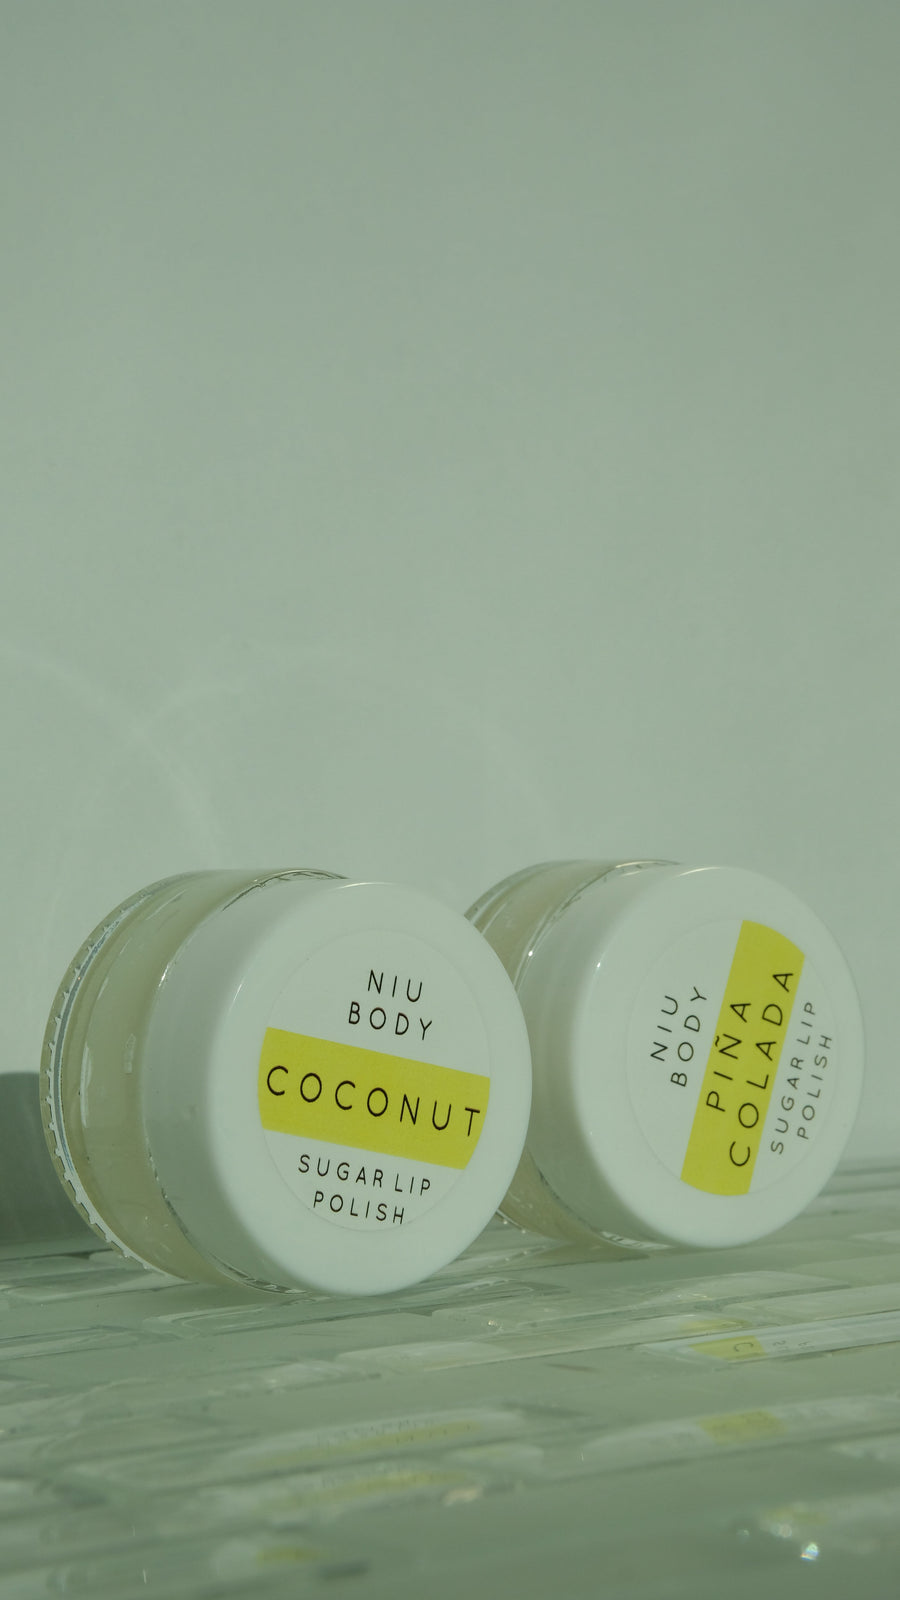 Sugar Lips Scrub by Niu Body